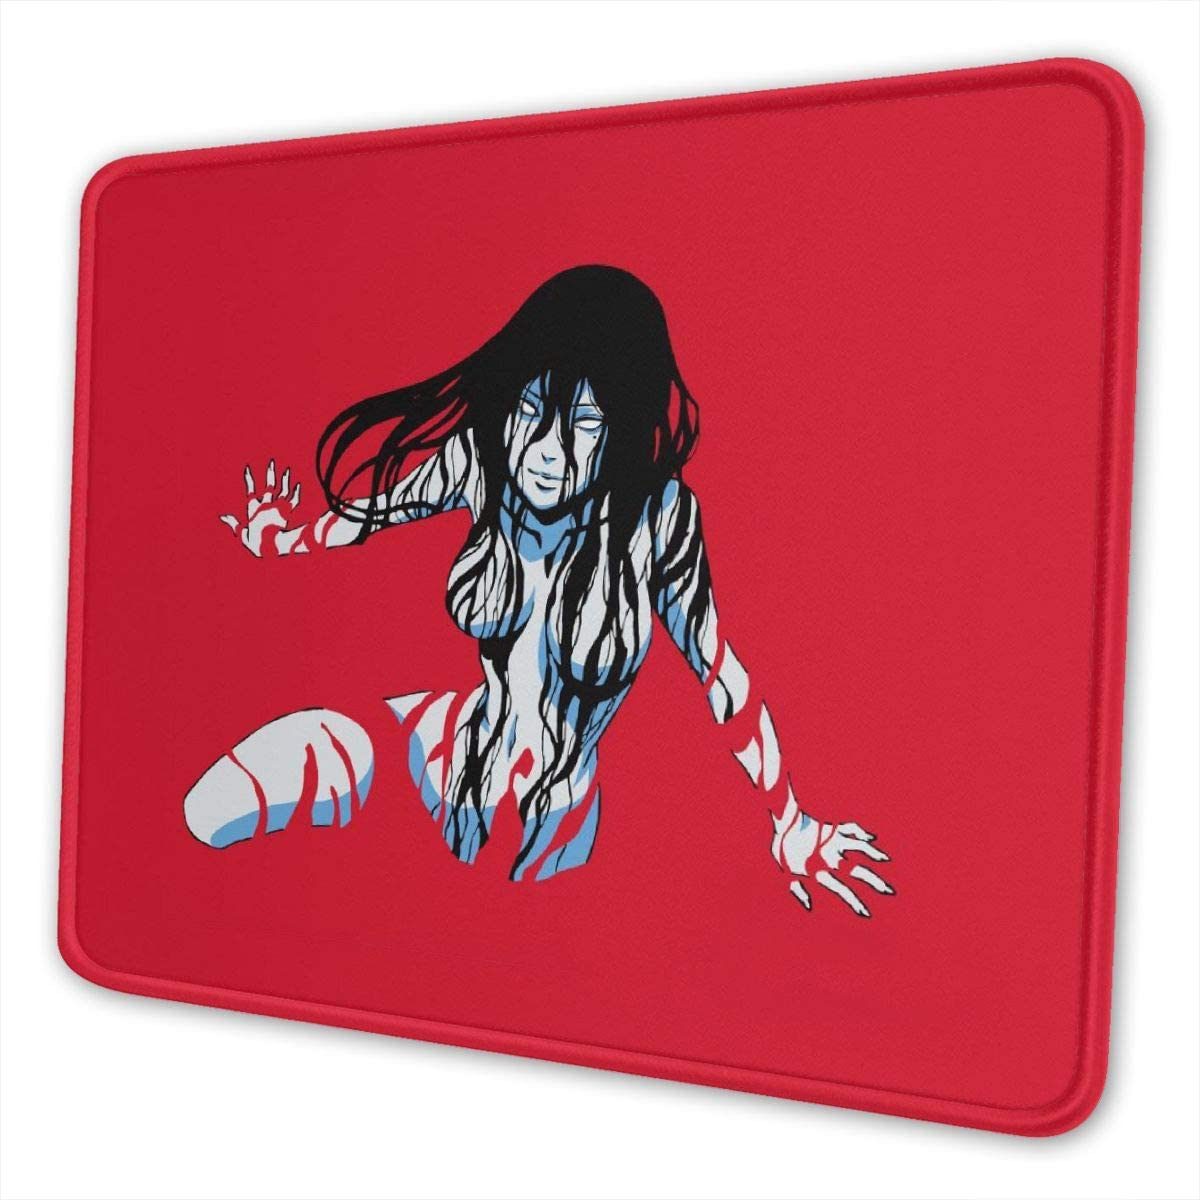 Junji Ito Tomie Kawakami Mouse Pad Non Slip Gaming Mouse Pad with Stitched Edge Computer PC Mousepad Rubber Base for Office Home